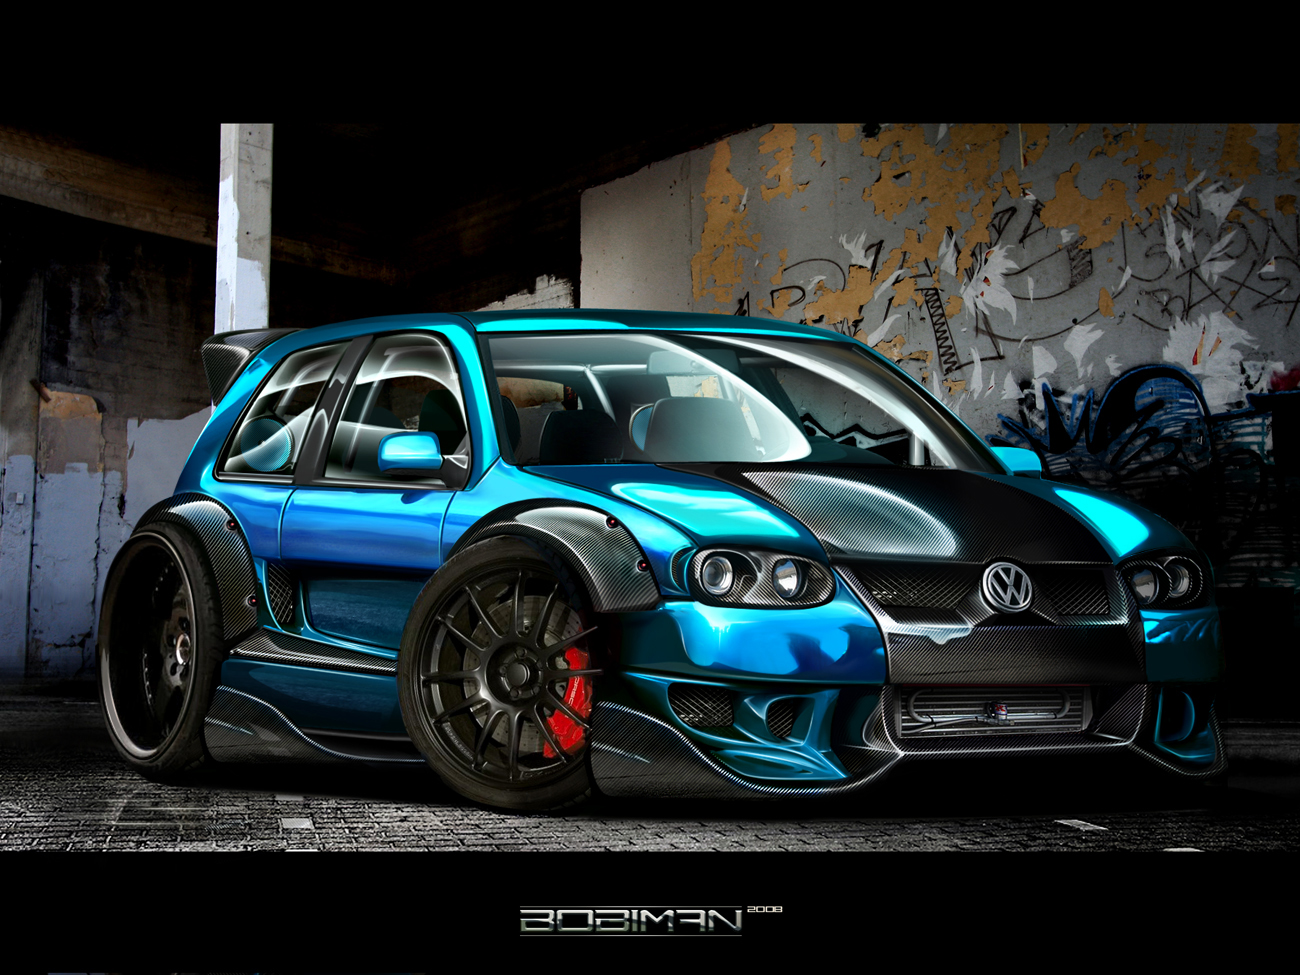 nice car wallpaper Cars Wallpapers And Pictures car imagescar pics 1300x975